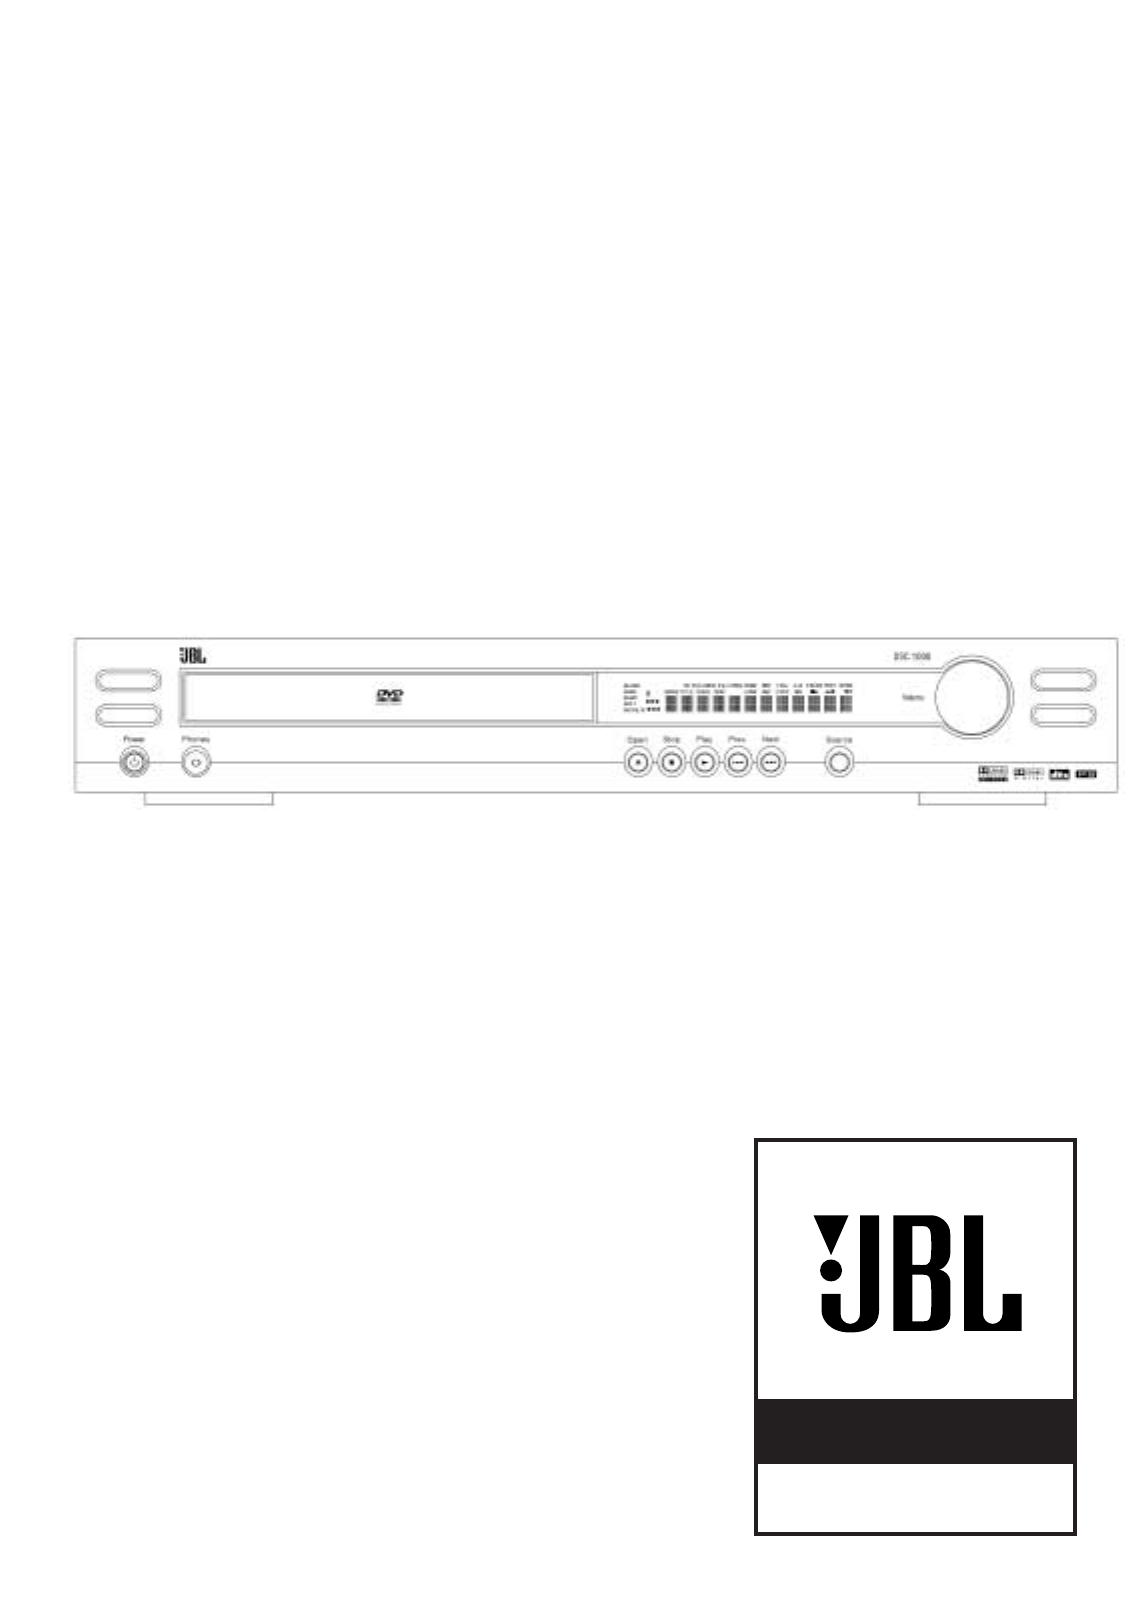 JBL Home Theater System DSC 1000 User Guide